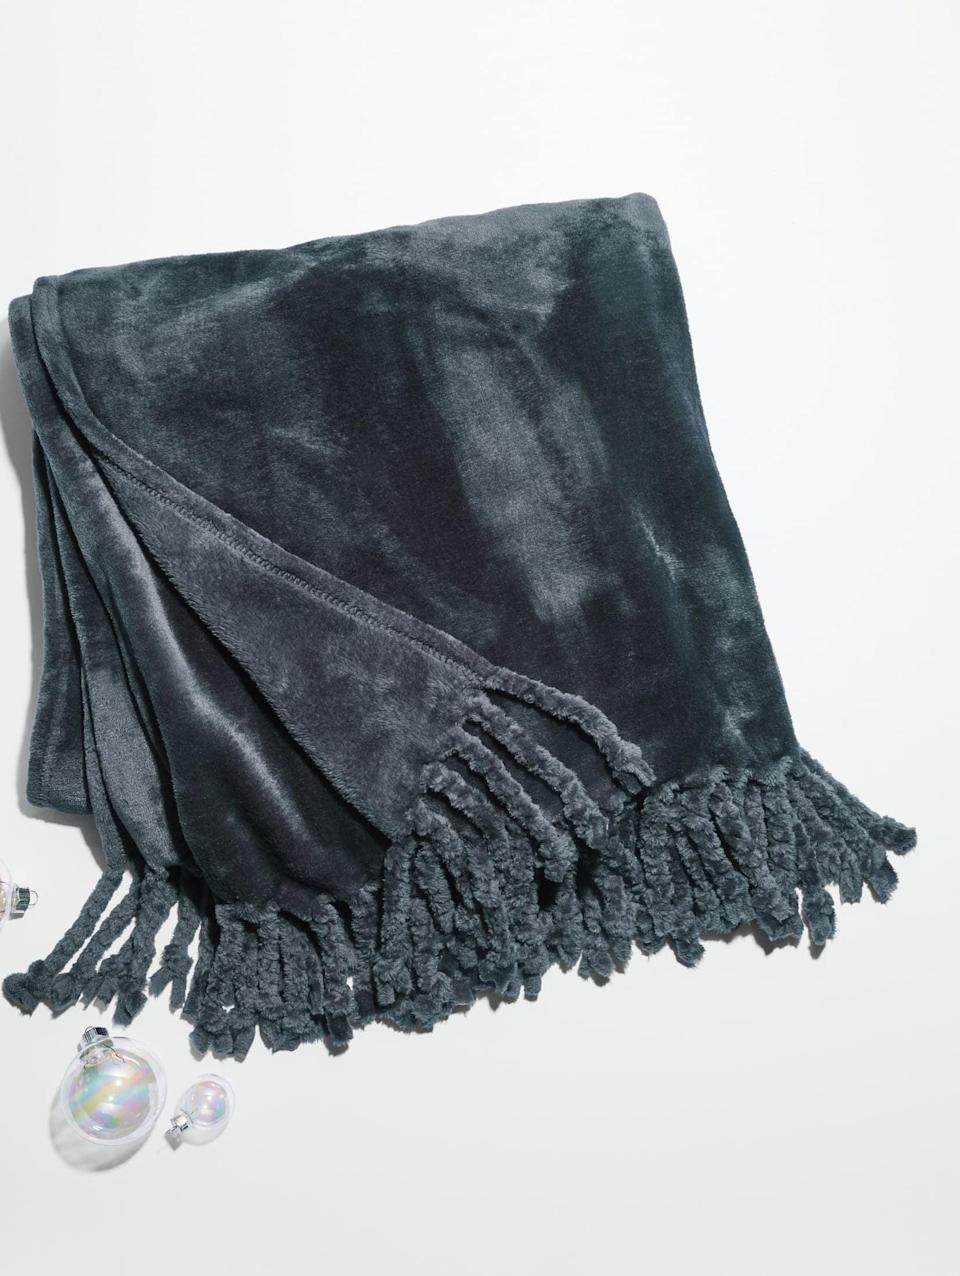 <p>If you're shopping for someone who loves home decor, then the <span>Nordstrom Nordstrom Bliss Plush Throw</span> ($40) is a great choice. Plus, it's a popular product that currently has over 2,000 rave reviews.</p>